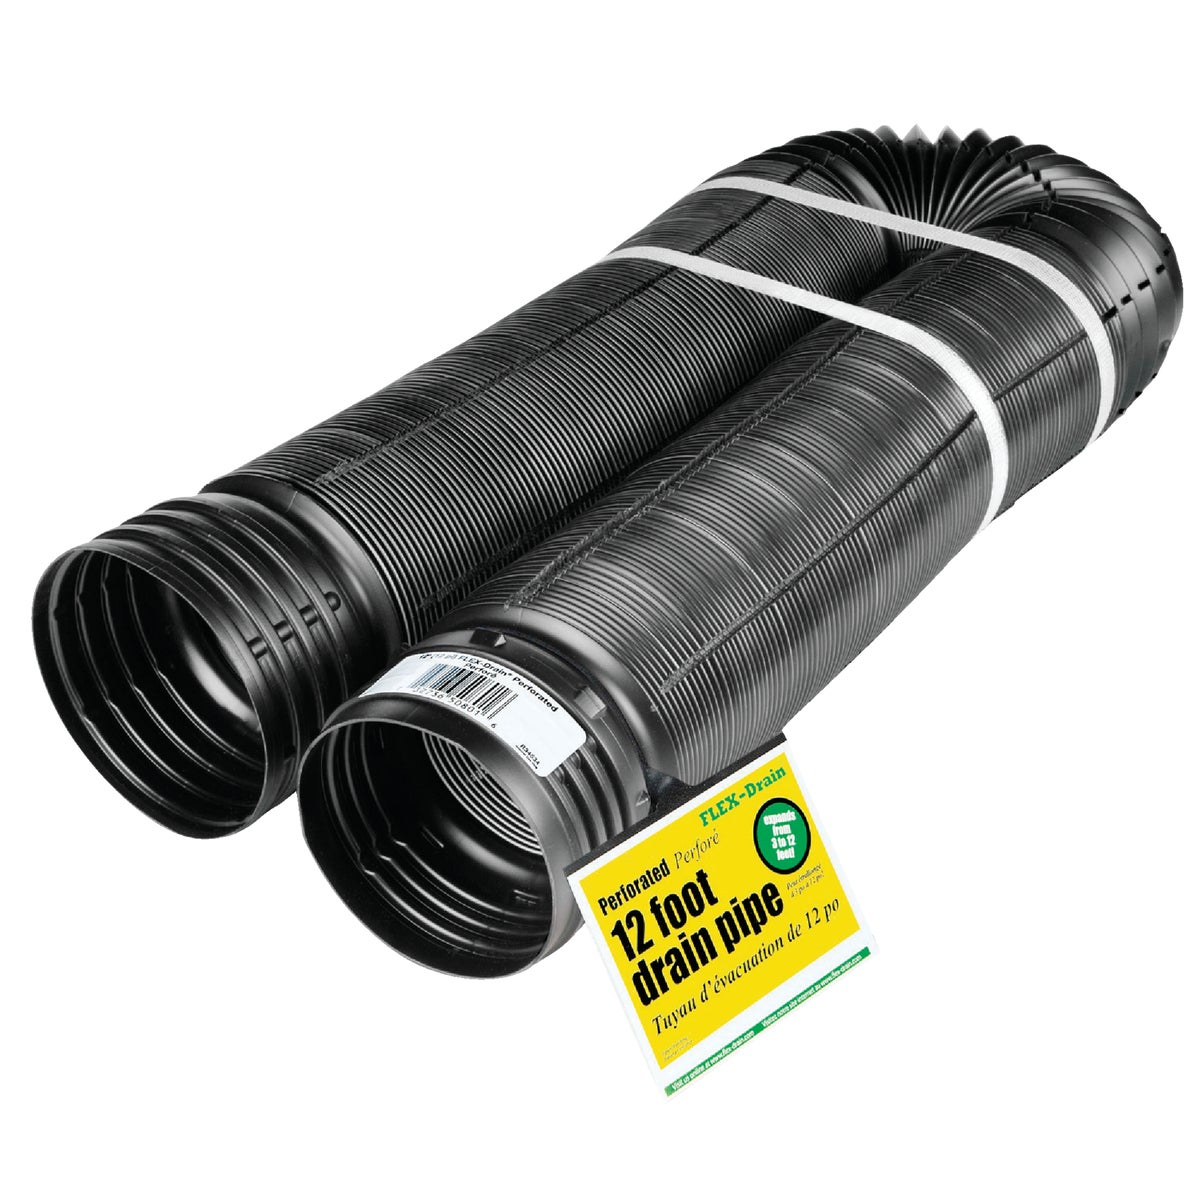 12' PERFORATED FLEX PIPE - 50910 by Cleveland Tubing Inc